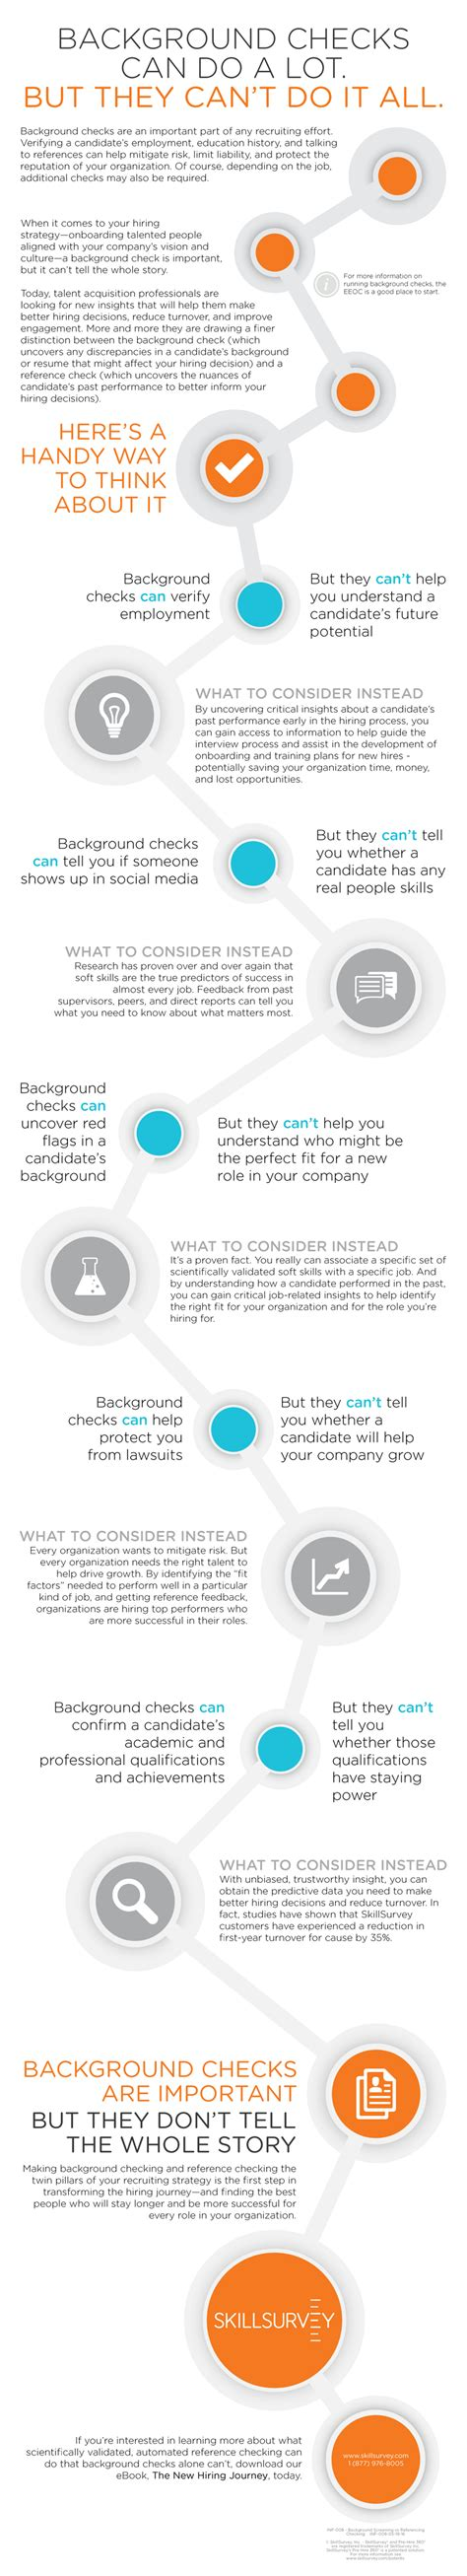 Background Check References Reference Checks Background Checks Infographic Skillsurvey